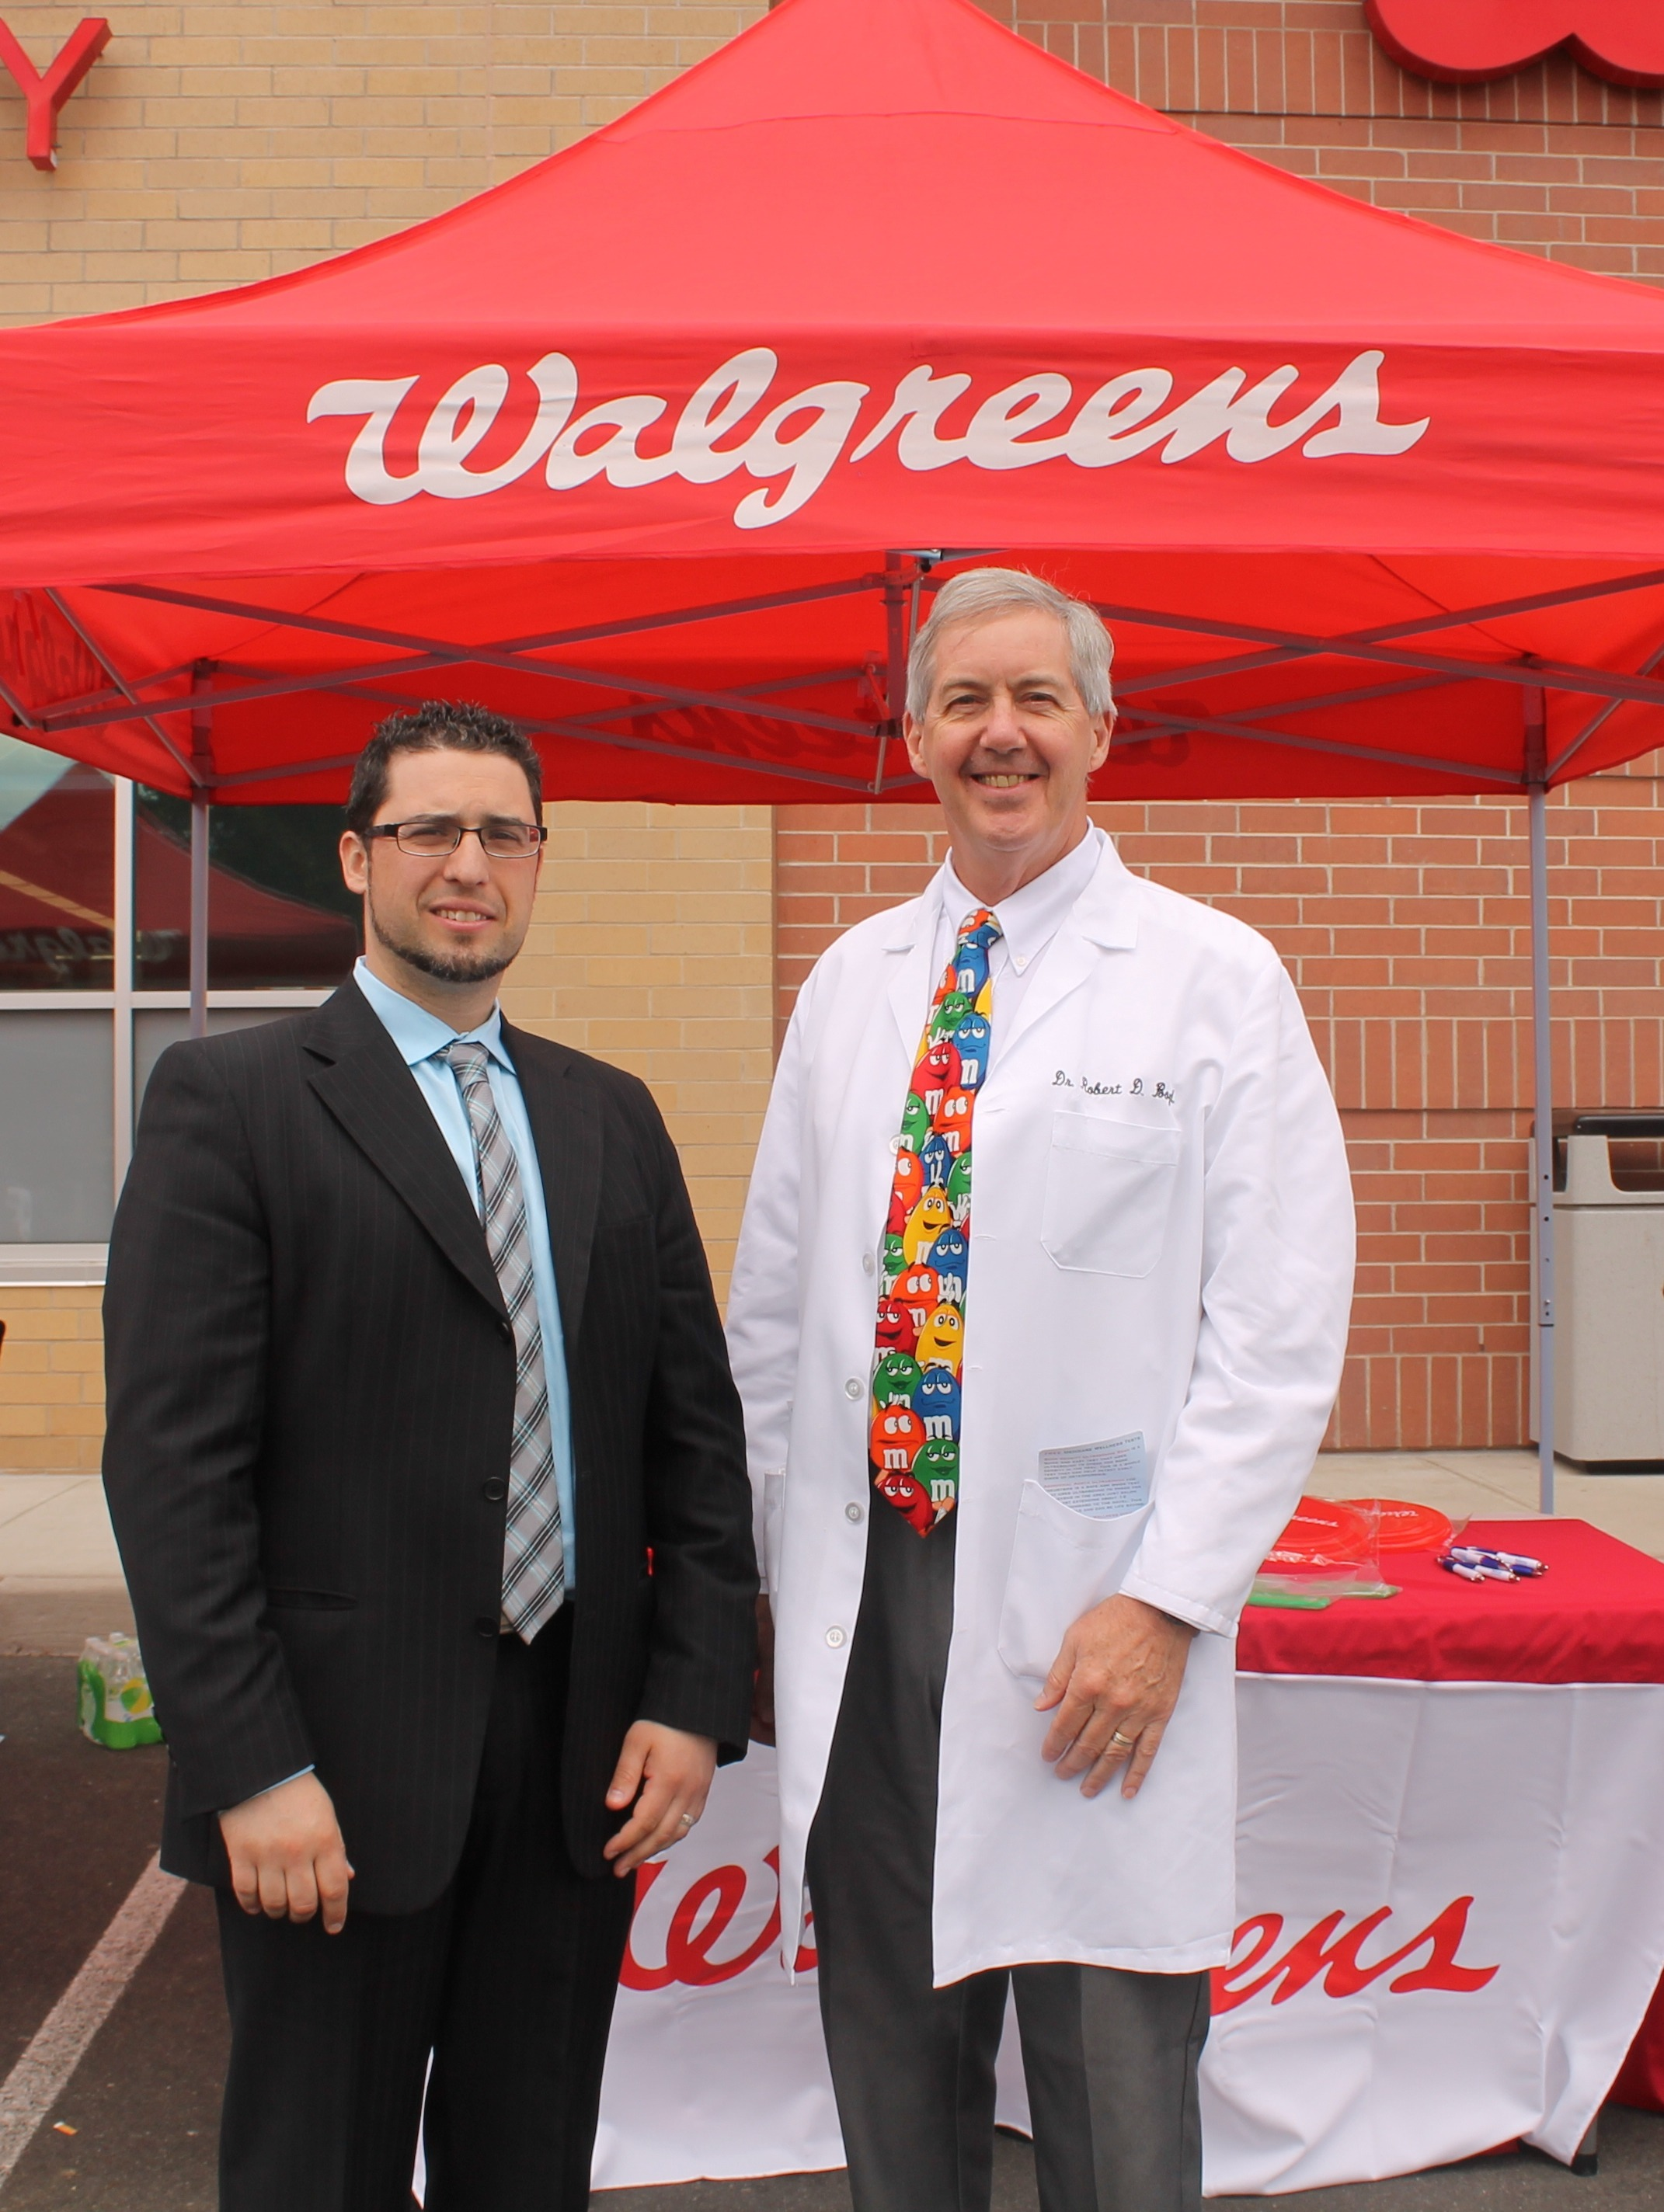 walgreen s offers community health fair news tapinto union nj walgreens community leader john ferraz teamed up dr robert boyd of the woodbridge medical group to participate in walgreens annual